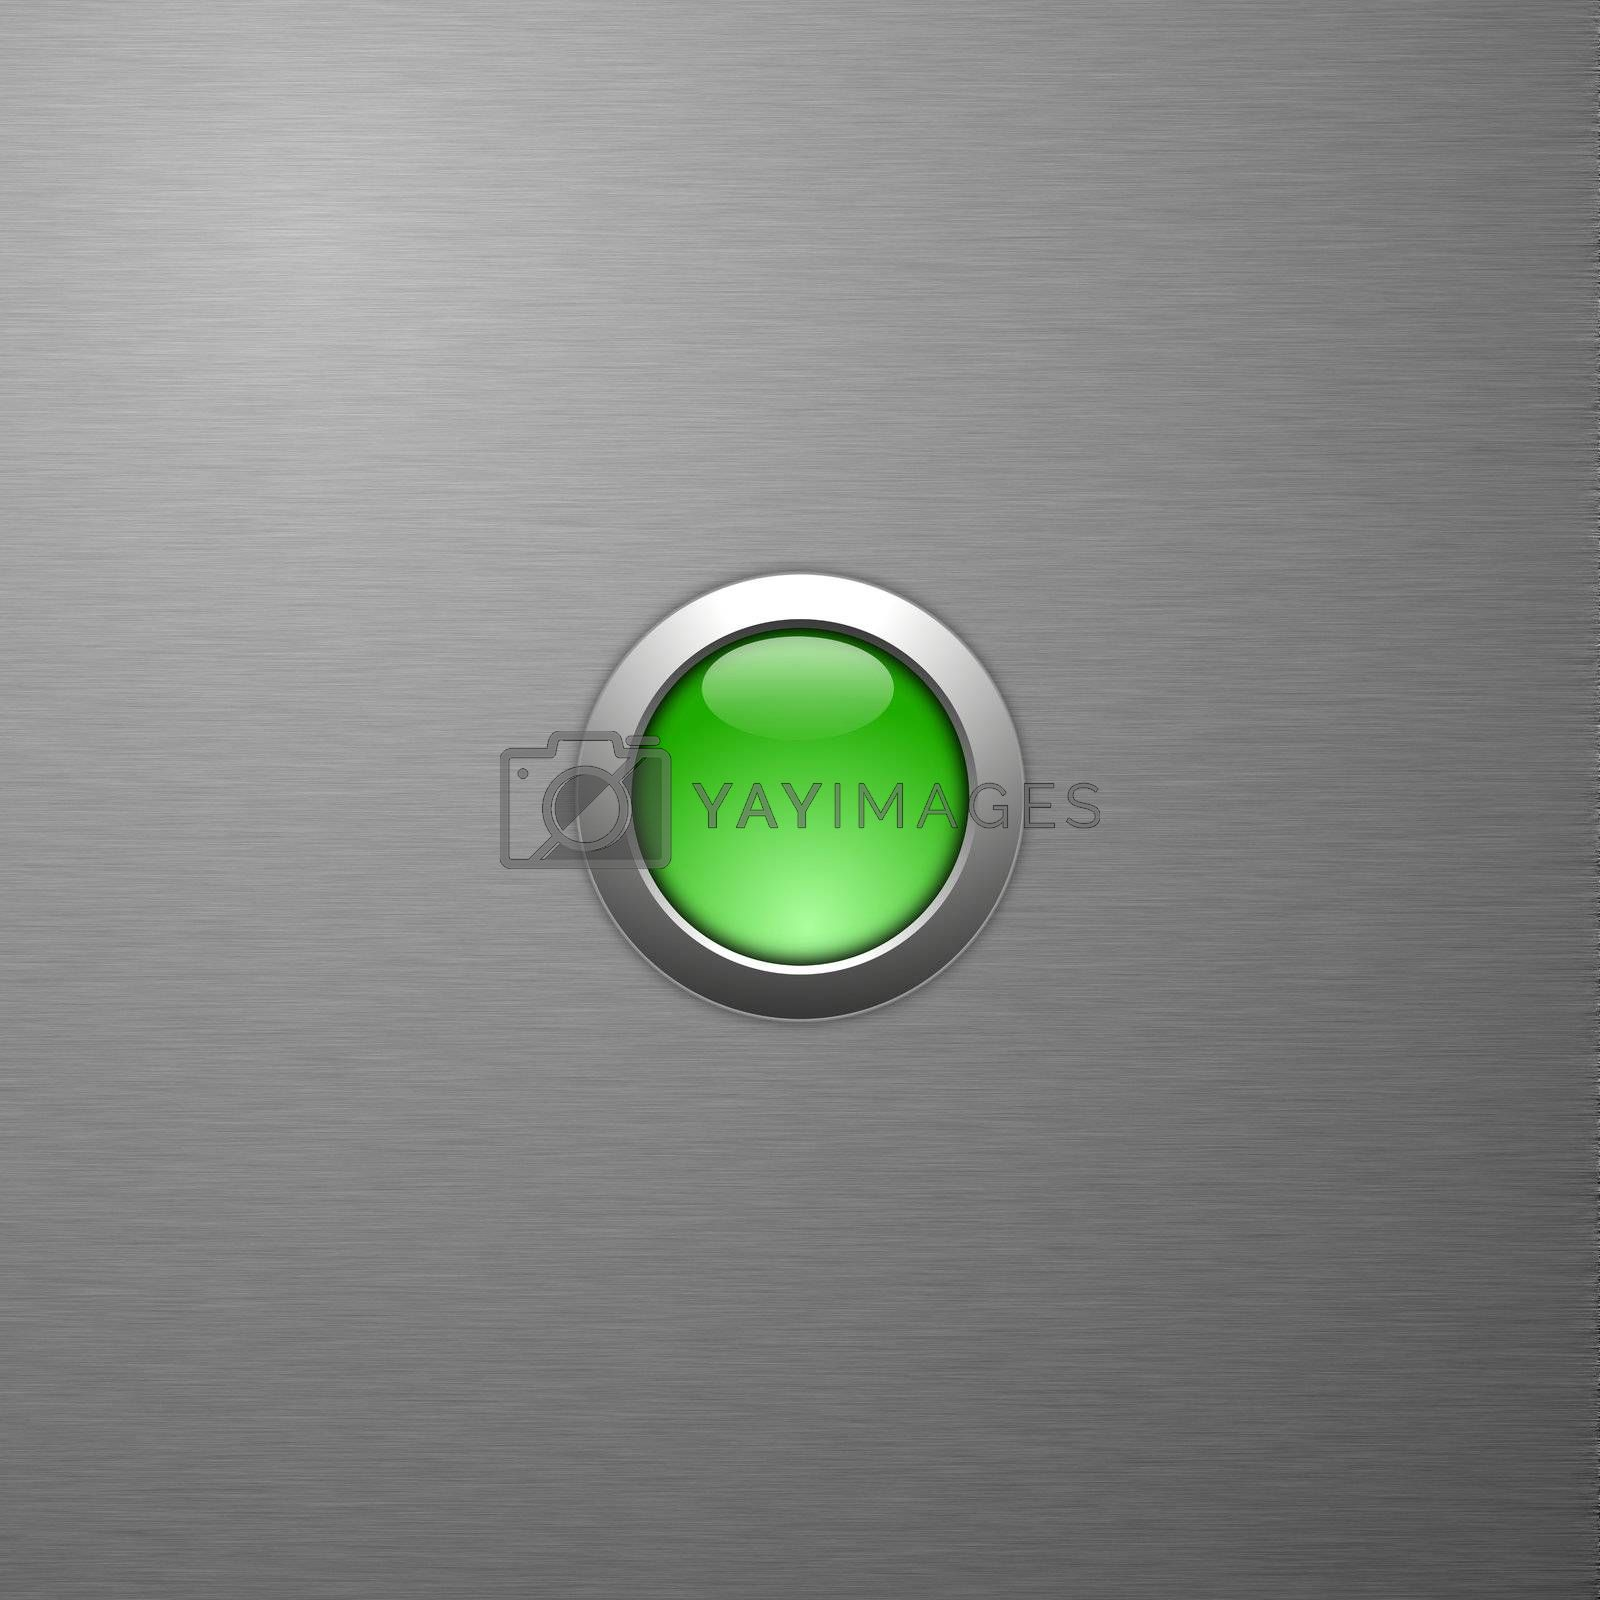 Royalty free image of green button by gunnar3000